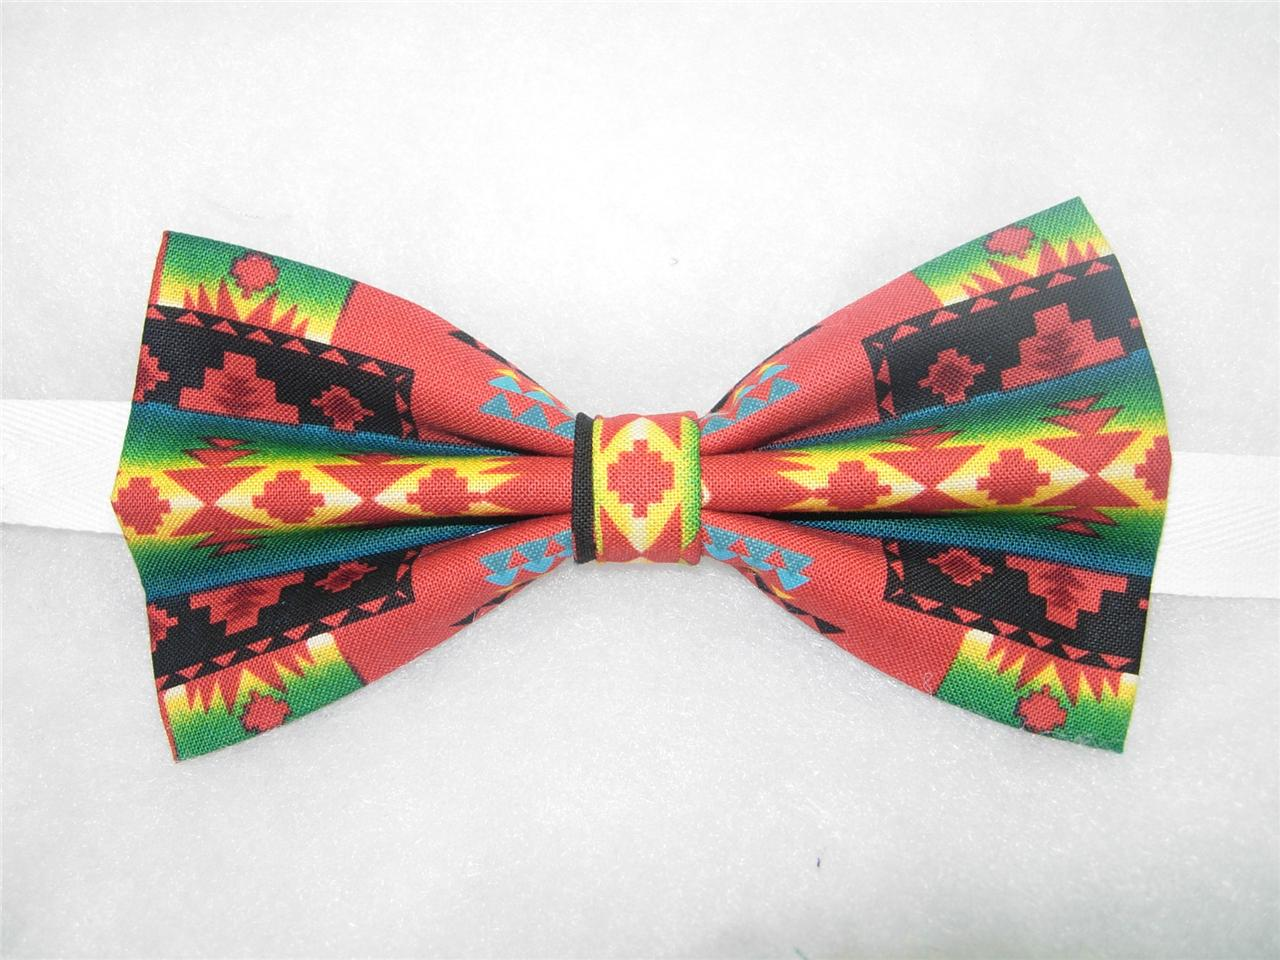 Indian Bow Tie Company. Subscribe to our newsletter to receive news, updates, free stuff and new releases by email.